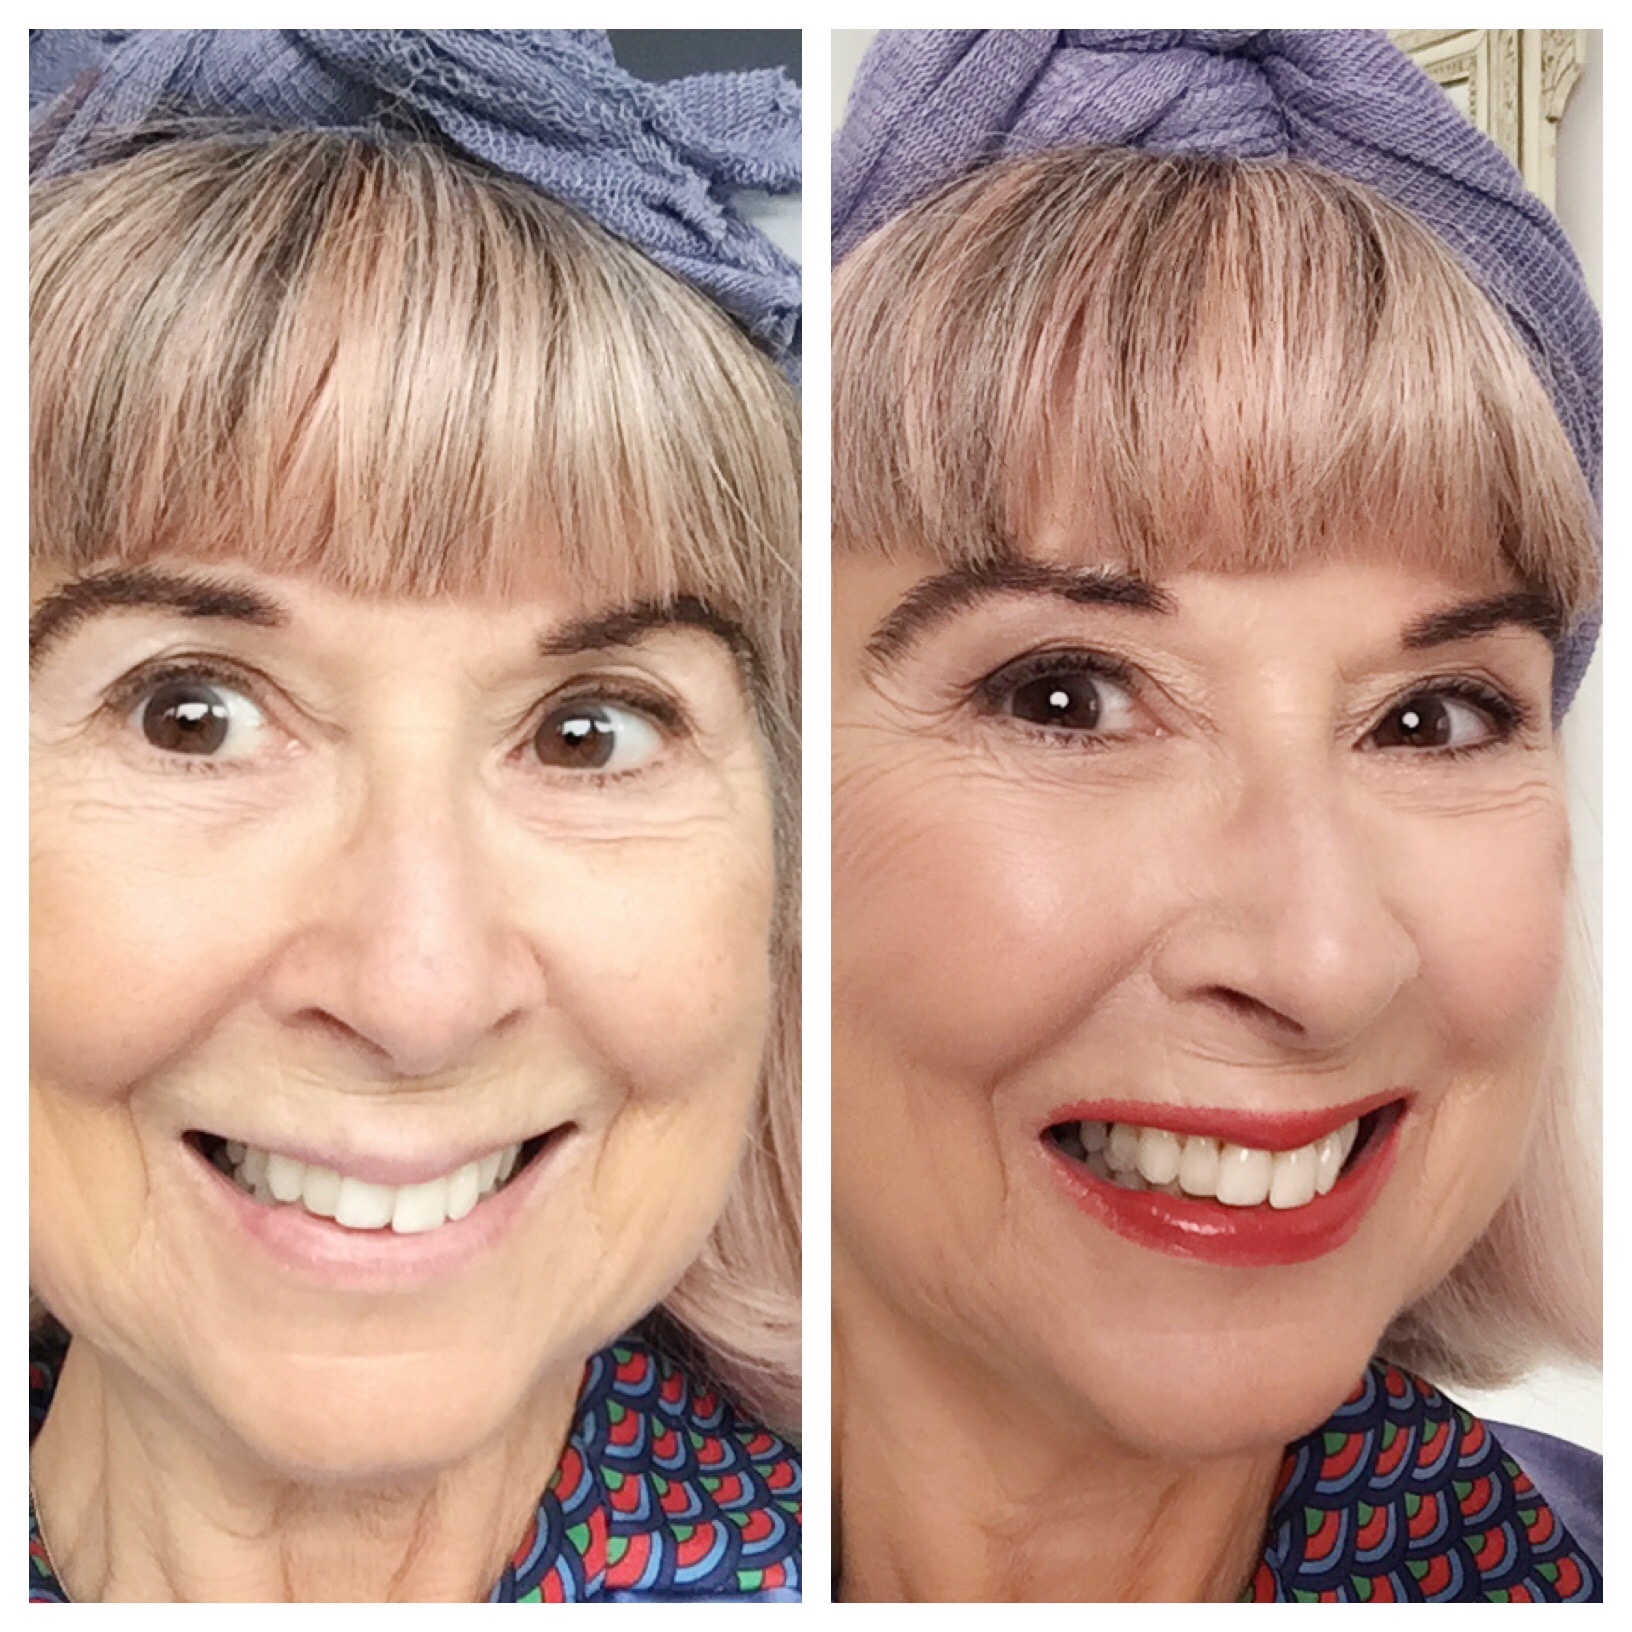 I get a makeover & new makeup for the Over 11s. — Alternative Ageing